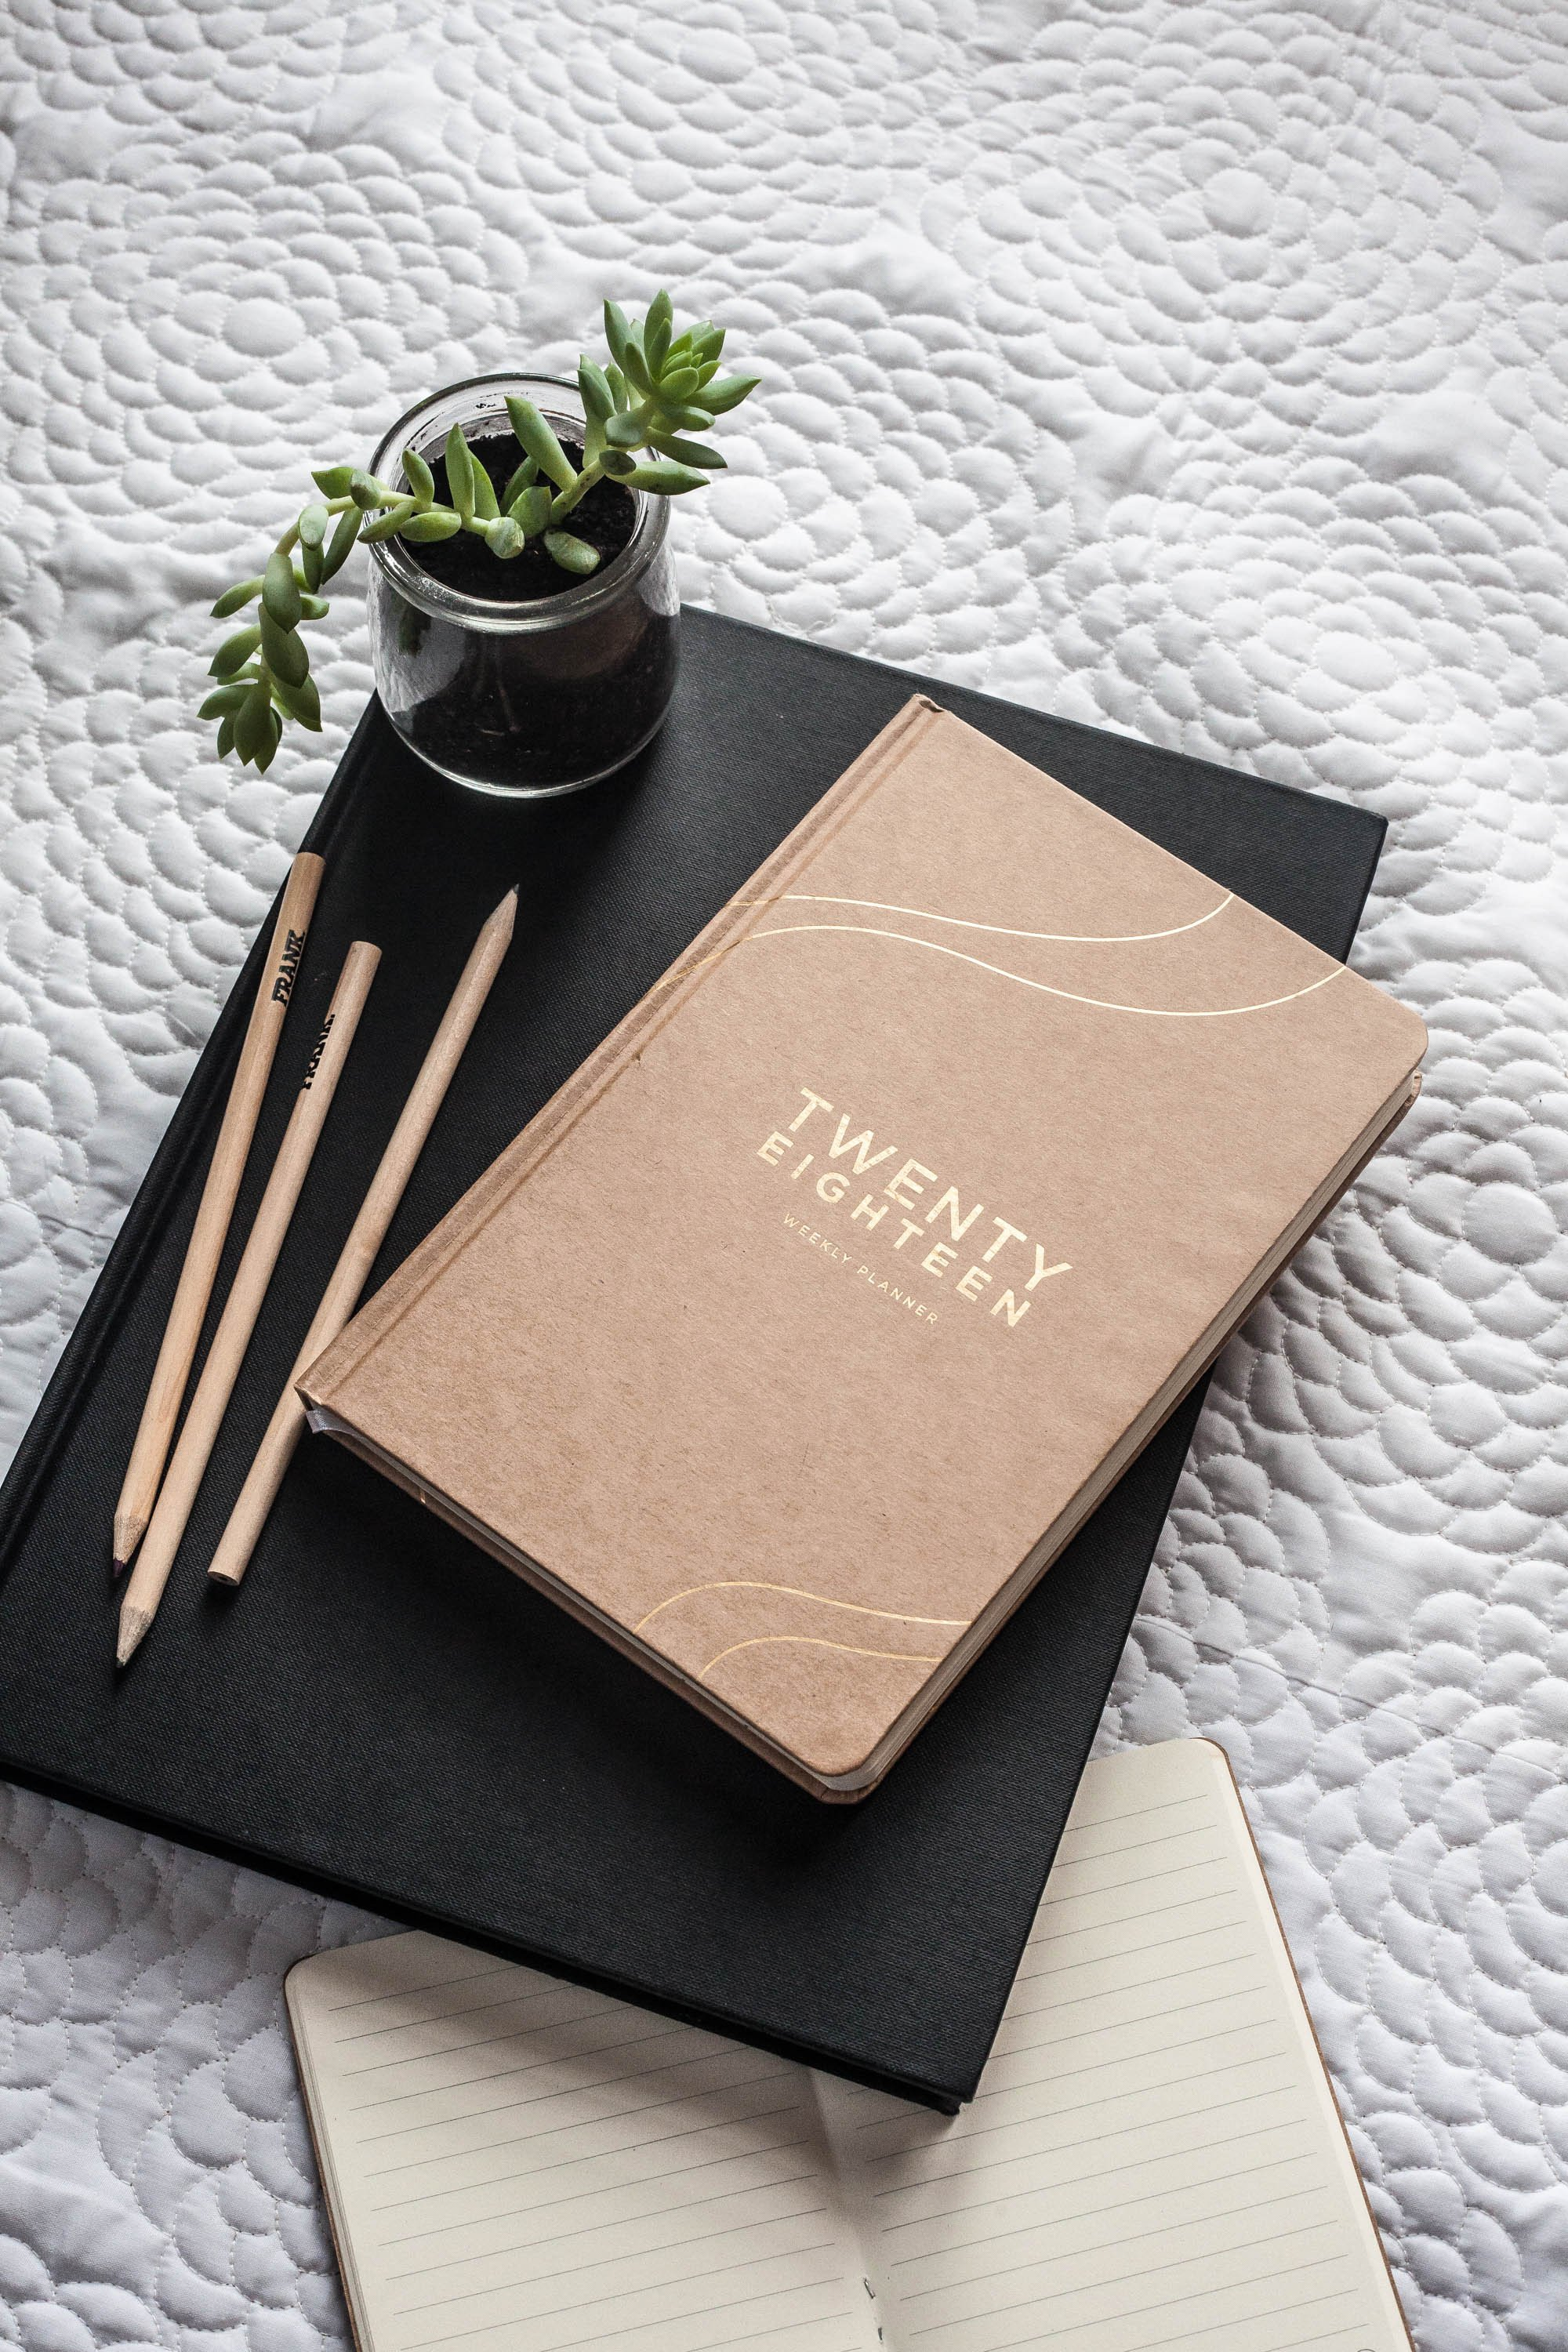 2018 Diary | Weekly planner – FRANK Stationery